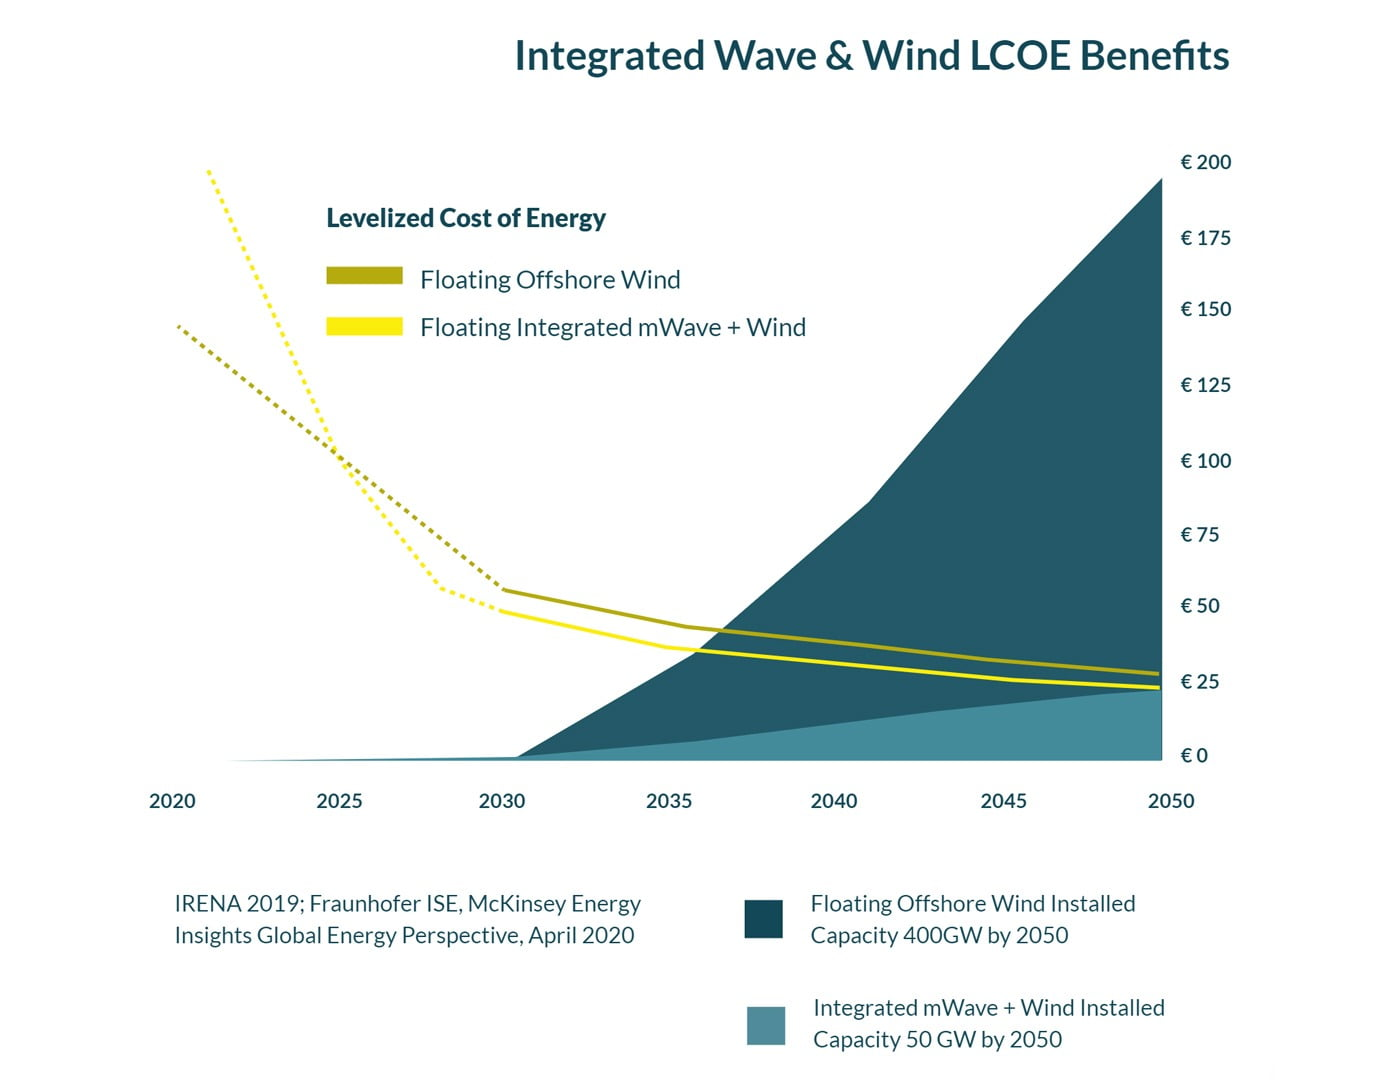 Graph,  future, mwave, wind, wave, lcoe, benefits, cost, InSPIRE